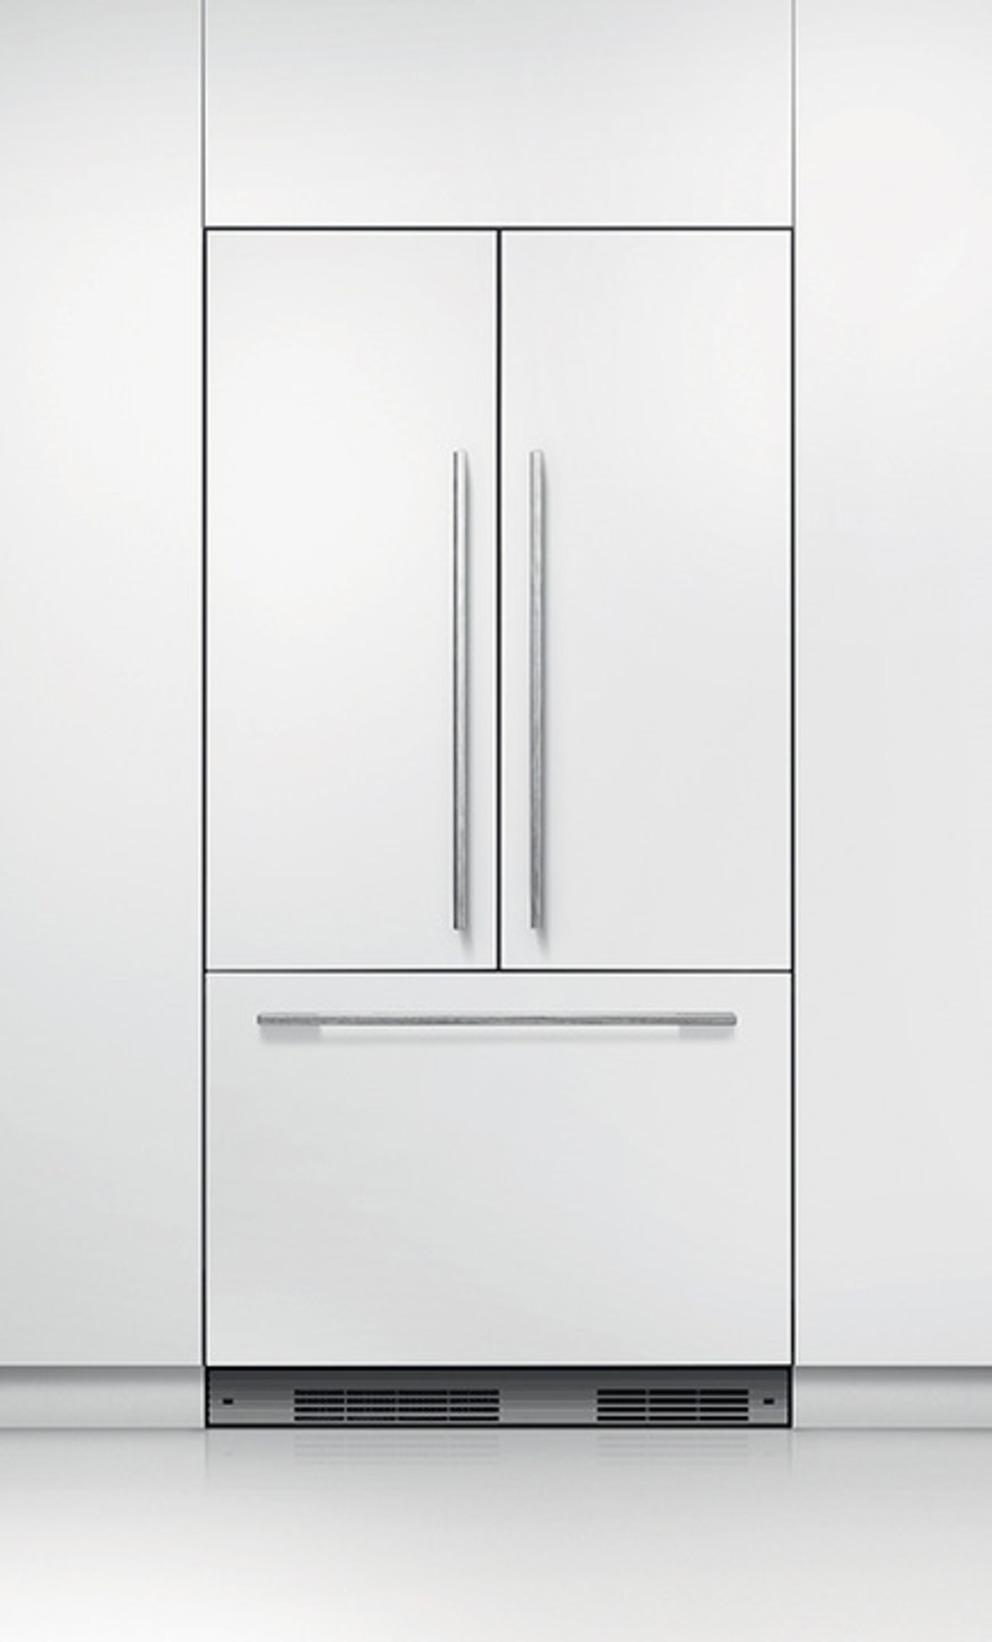 Réfrigérateurs Fisher&Paykel RS36A72J1 (72'' F&P)